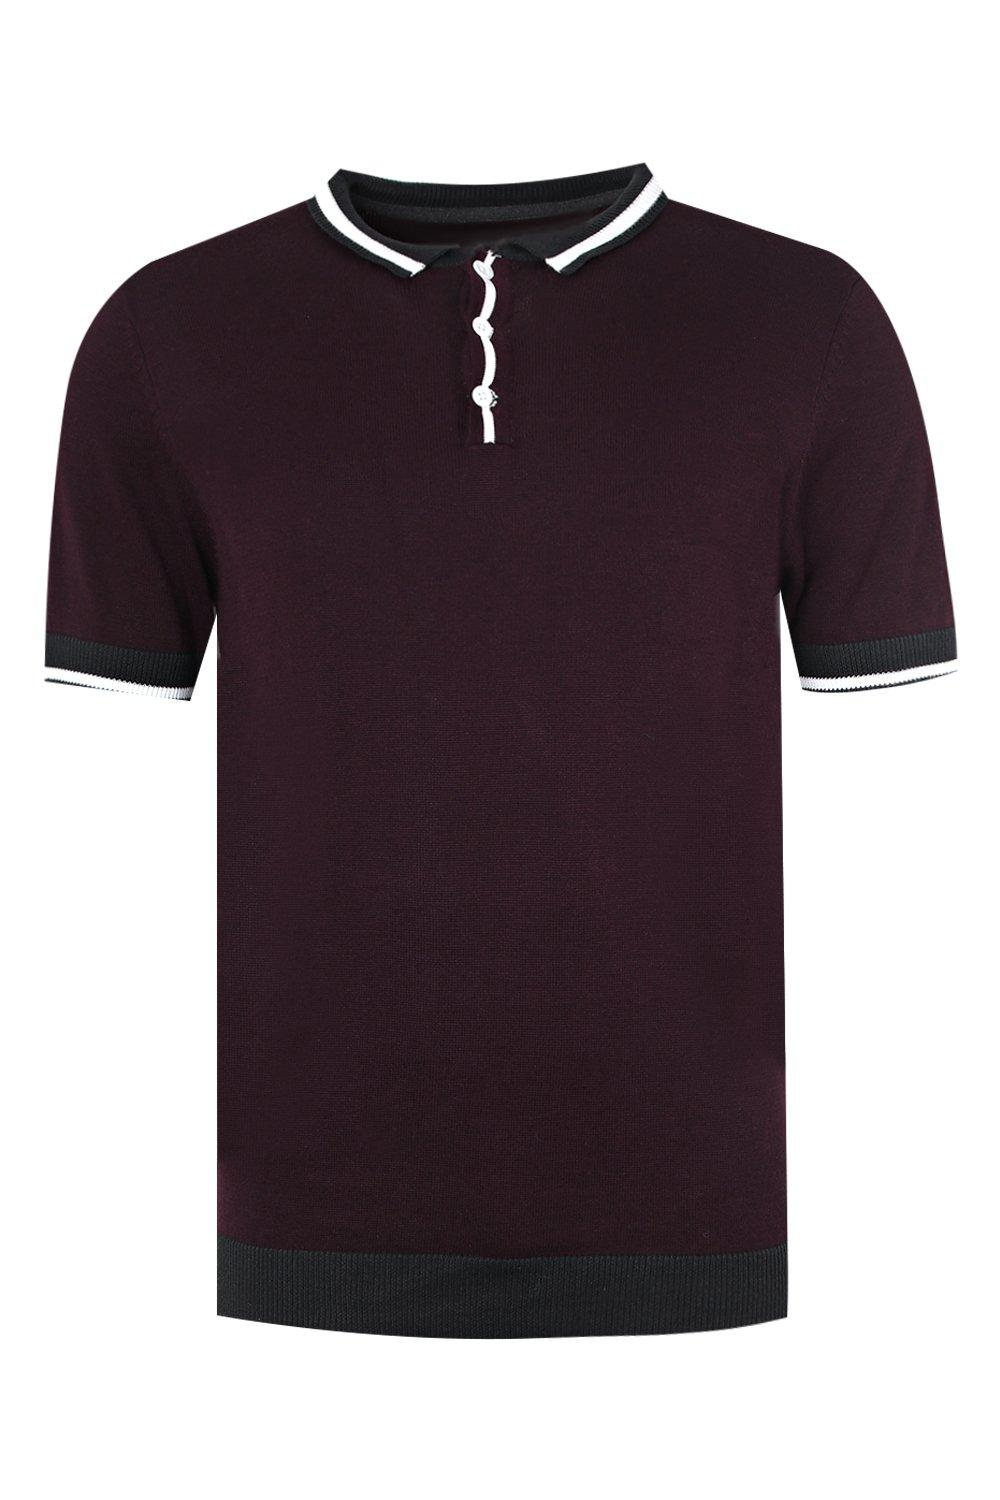 boohooMAN burgundy Short Sleeve Knitted Polo with Tipping